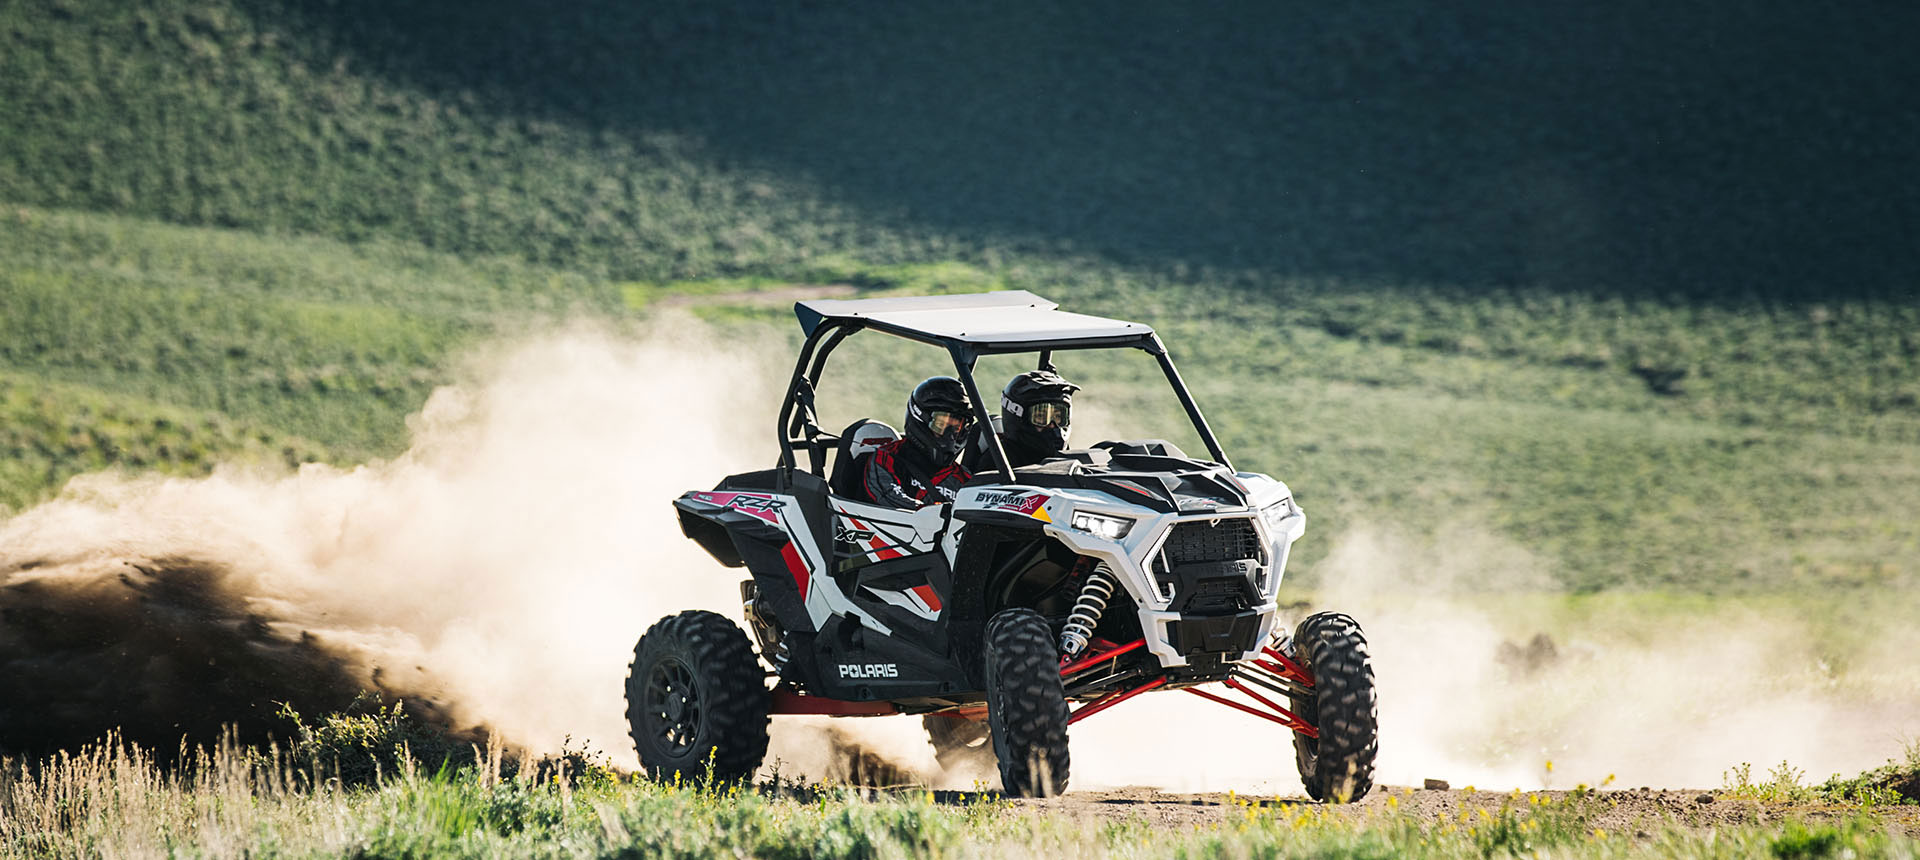 2019 Polaris RZR XP 1000 in Hazlehurst, Georgia - Photo 3